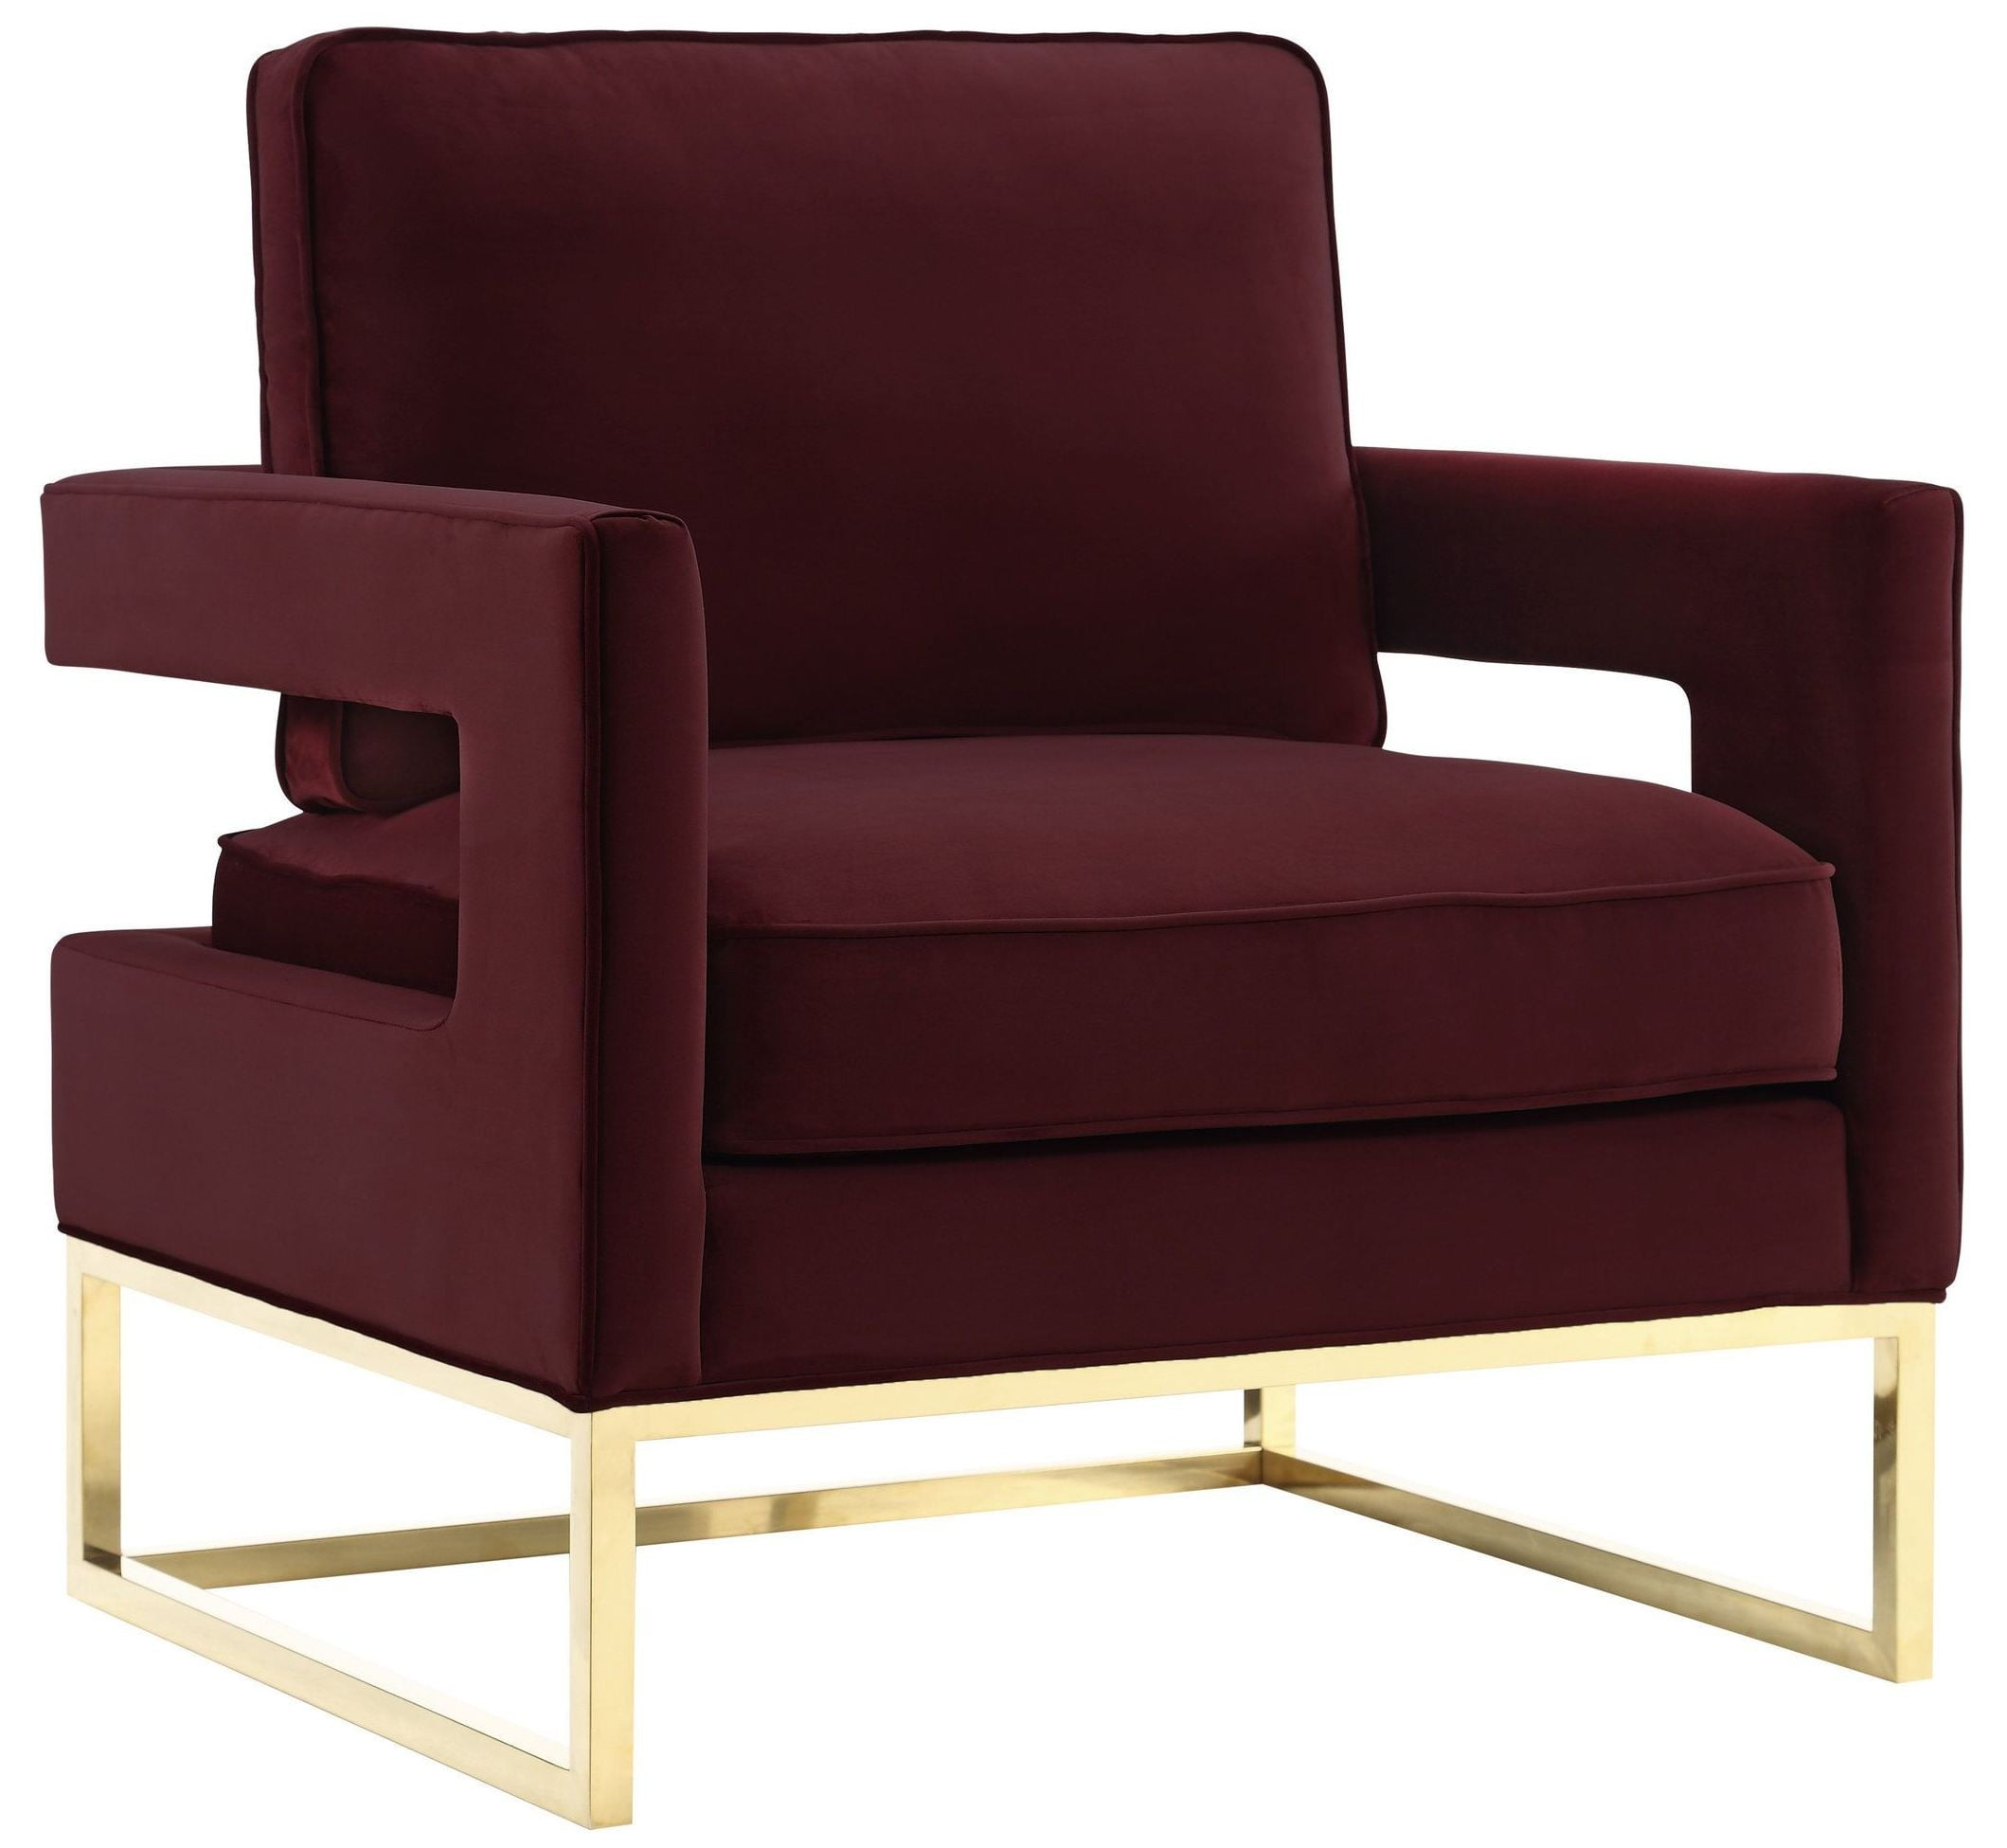 maroon office chairs wood high chair canada avery velvet from tov coleman furniture